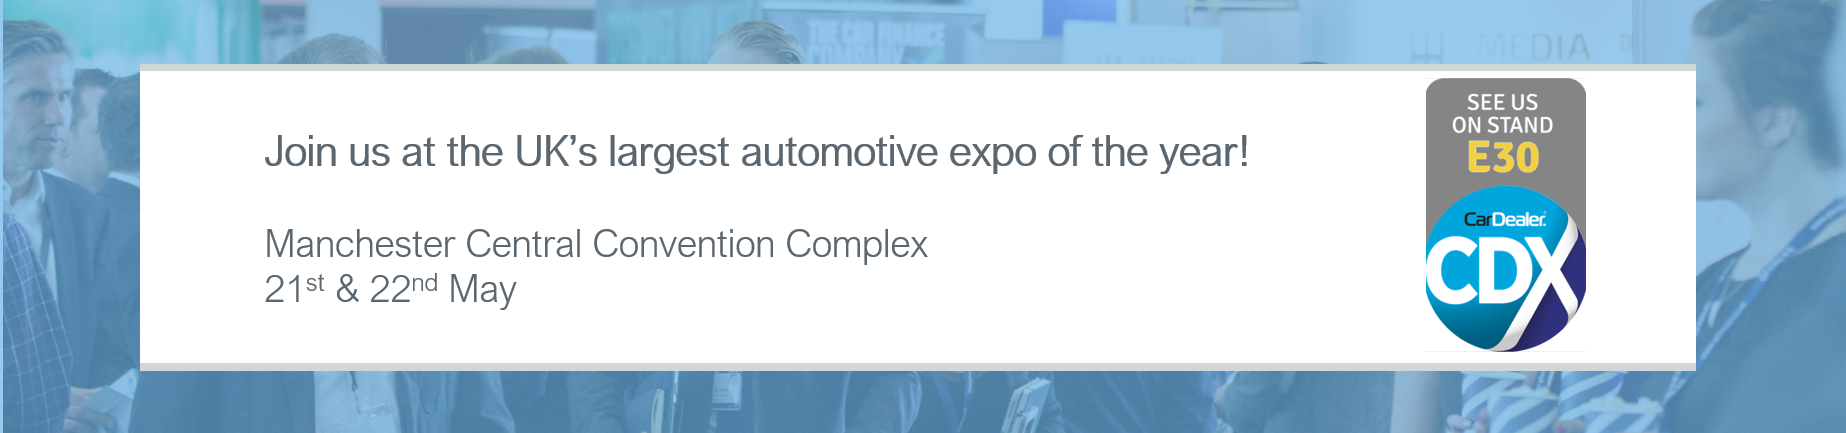 Join us at the UK's largest automotive expo of the year!